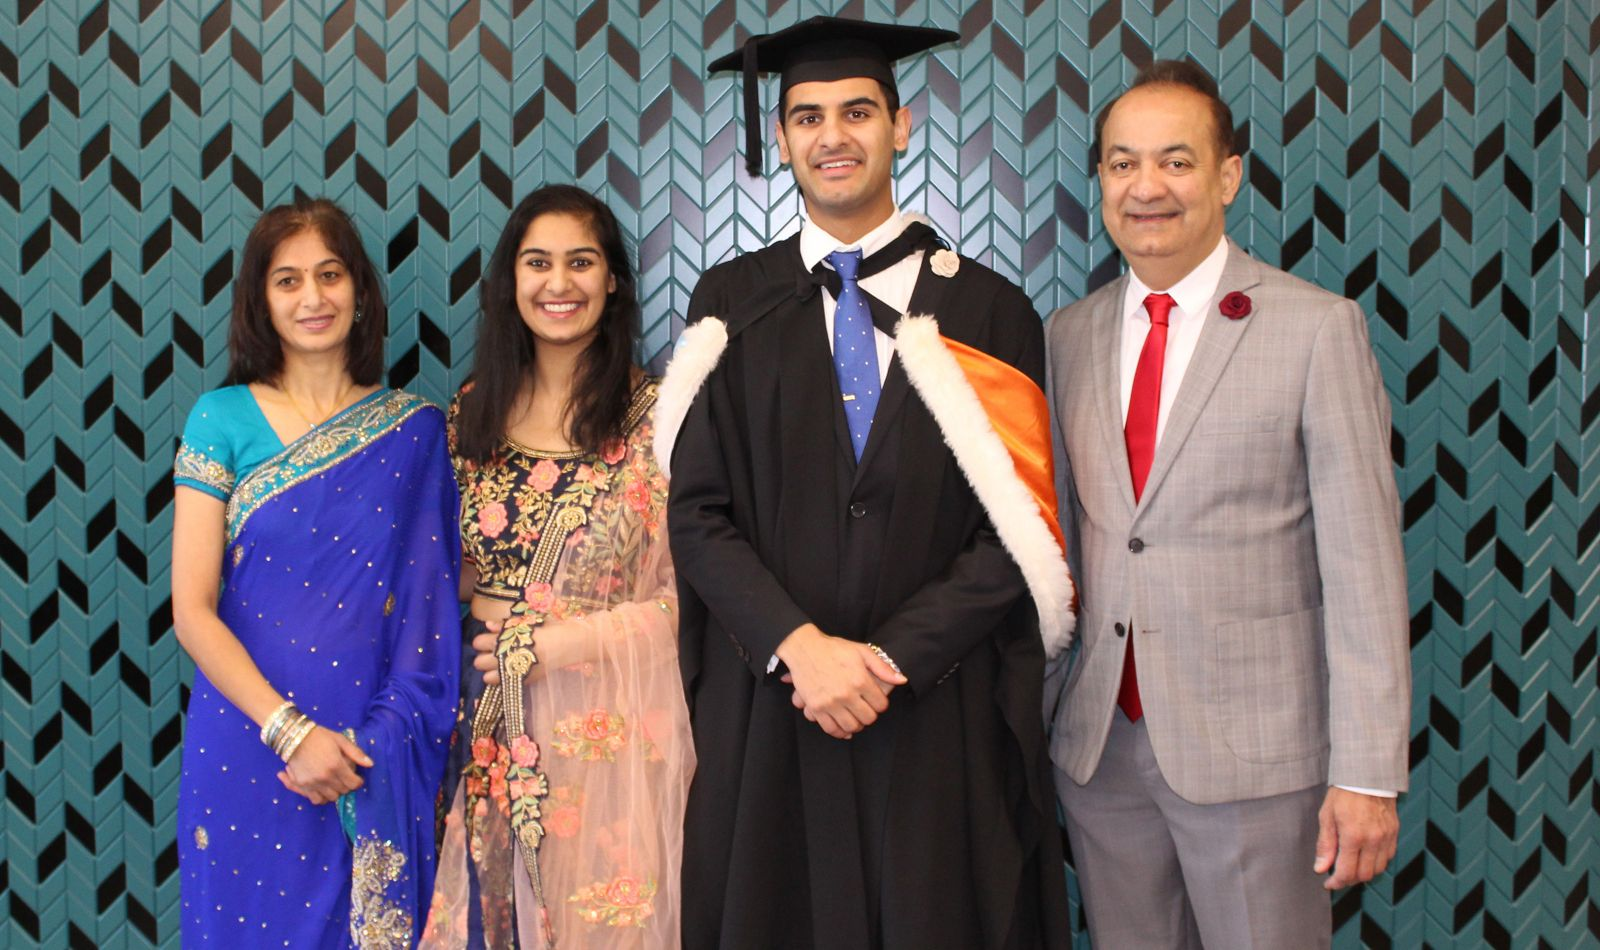 Bhavin celebrates graduation with his mother Nikita Parshottam (left), his sister Pooja Parshottam (second left), and his father Nitin Parshottam (right).